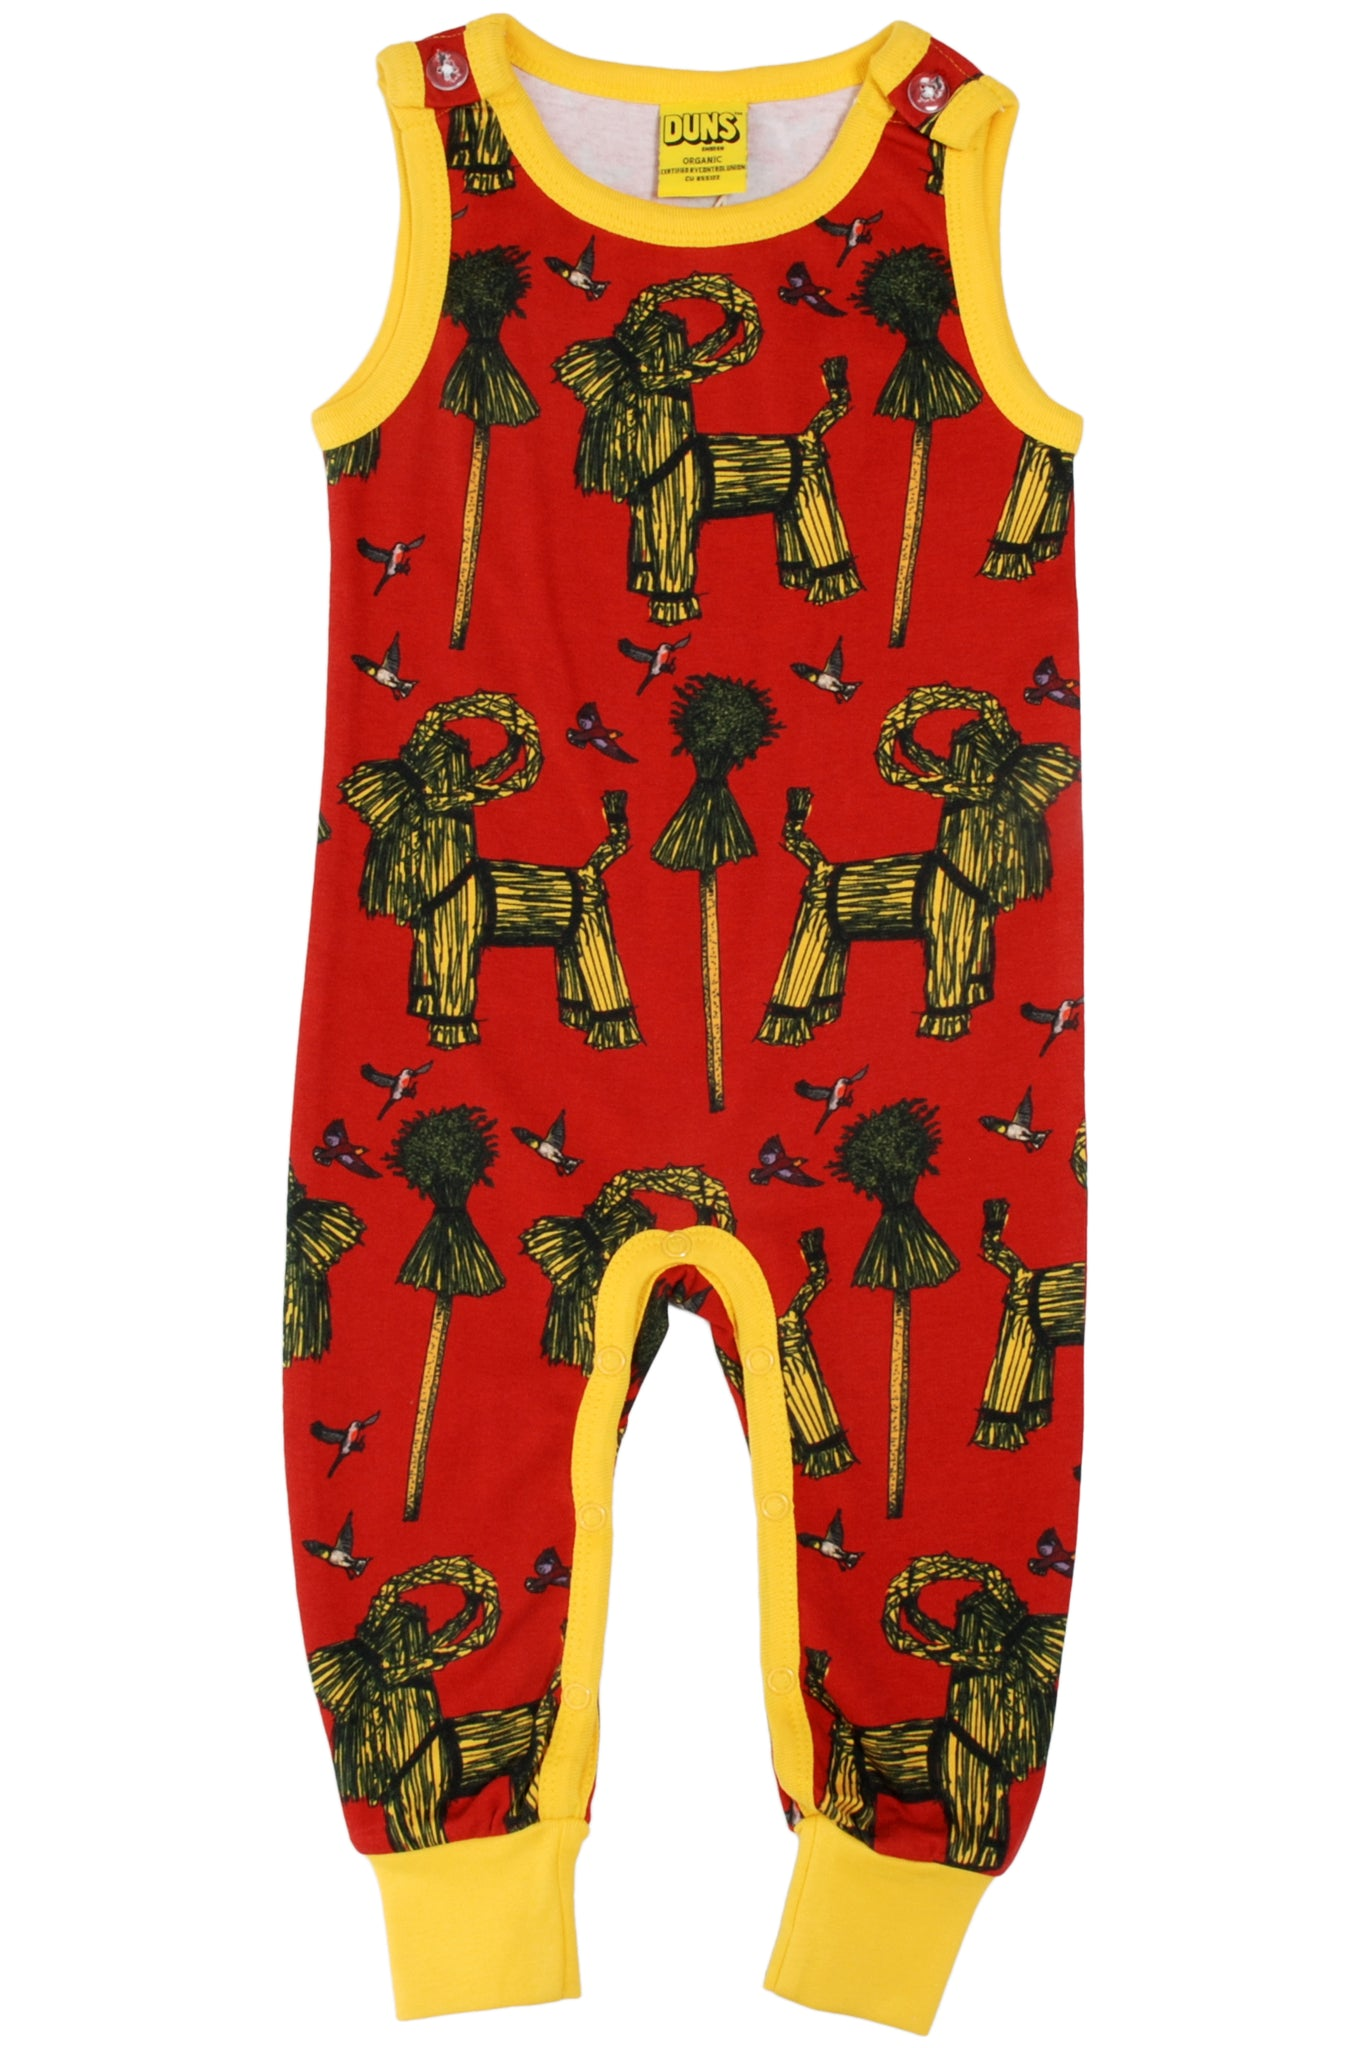 Dungaree Sheaf - Red - DUNS Fashion - Snugglefox